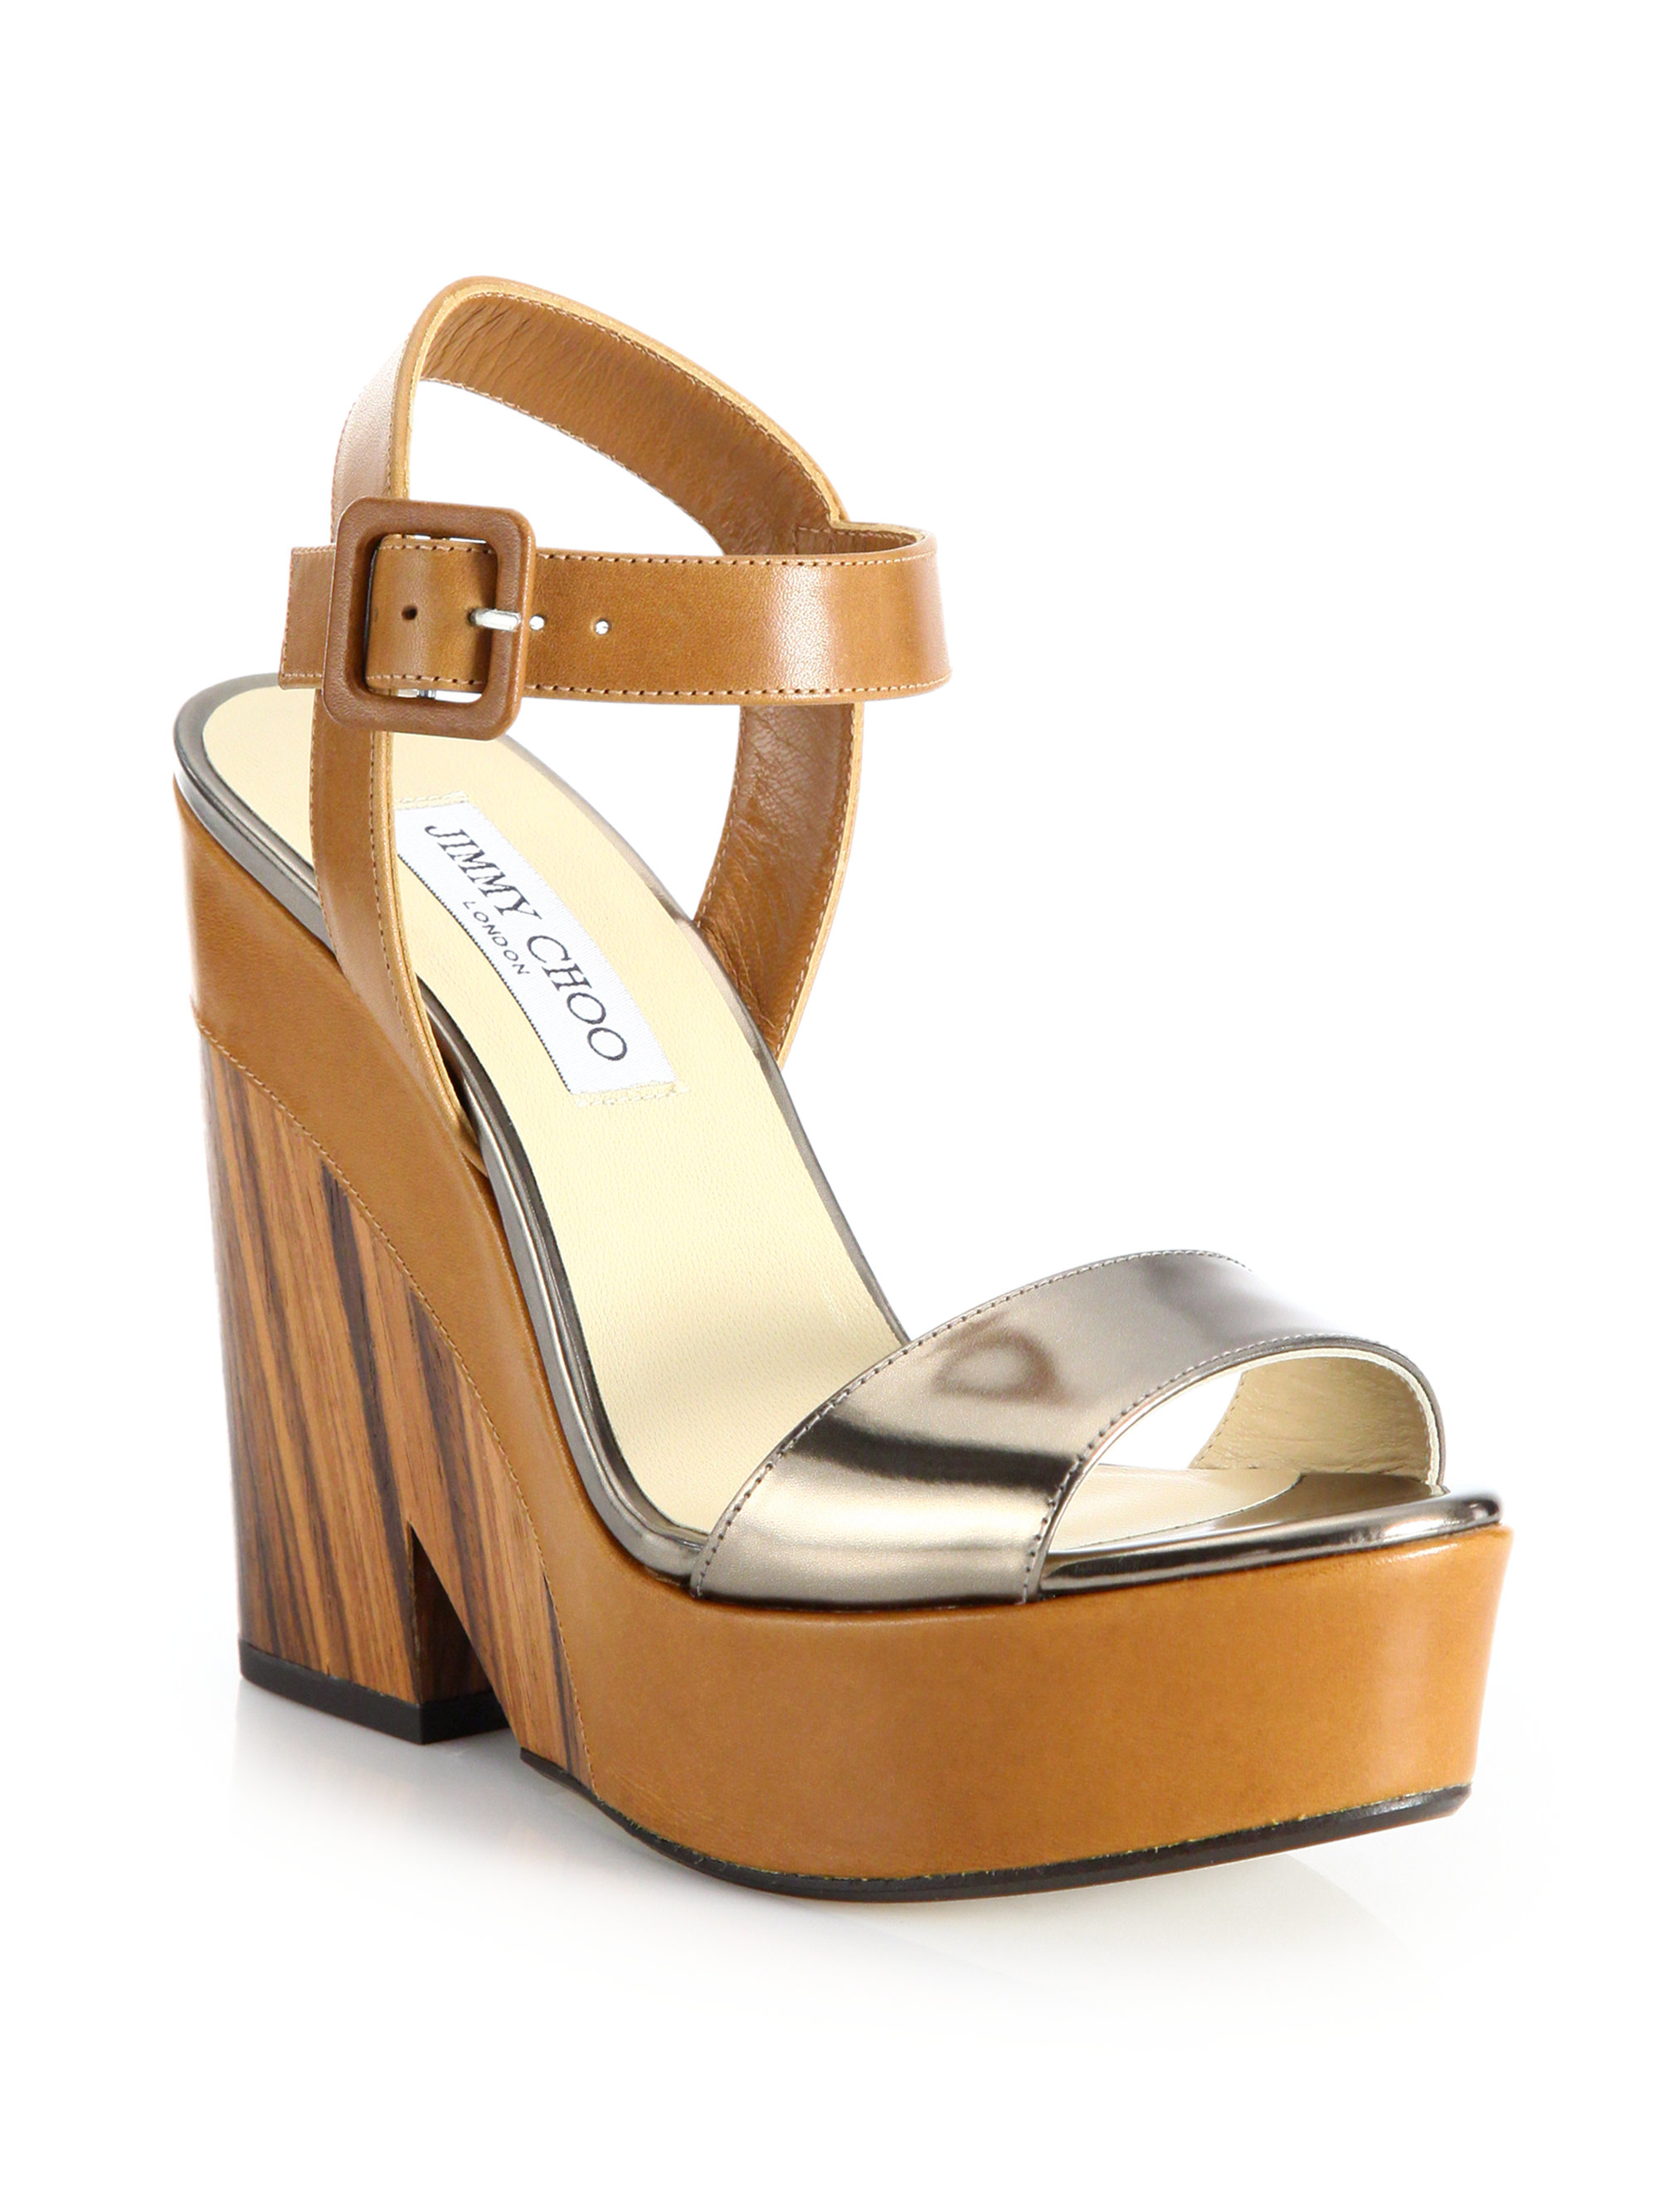 c7ee6809284a ... inexpensive lyst jimmy choo nico metallic leather wooden wedge sandals  in 5d329 94551